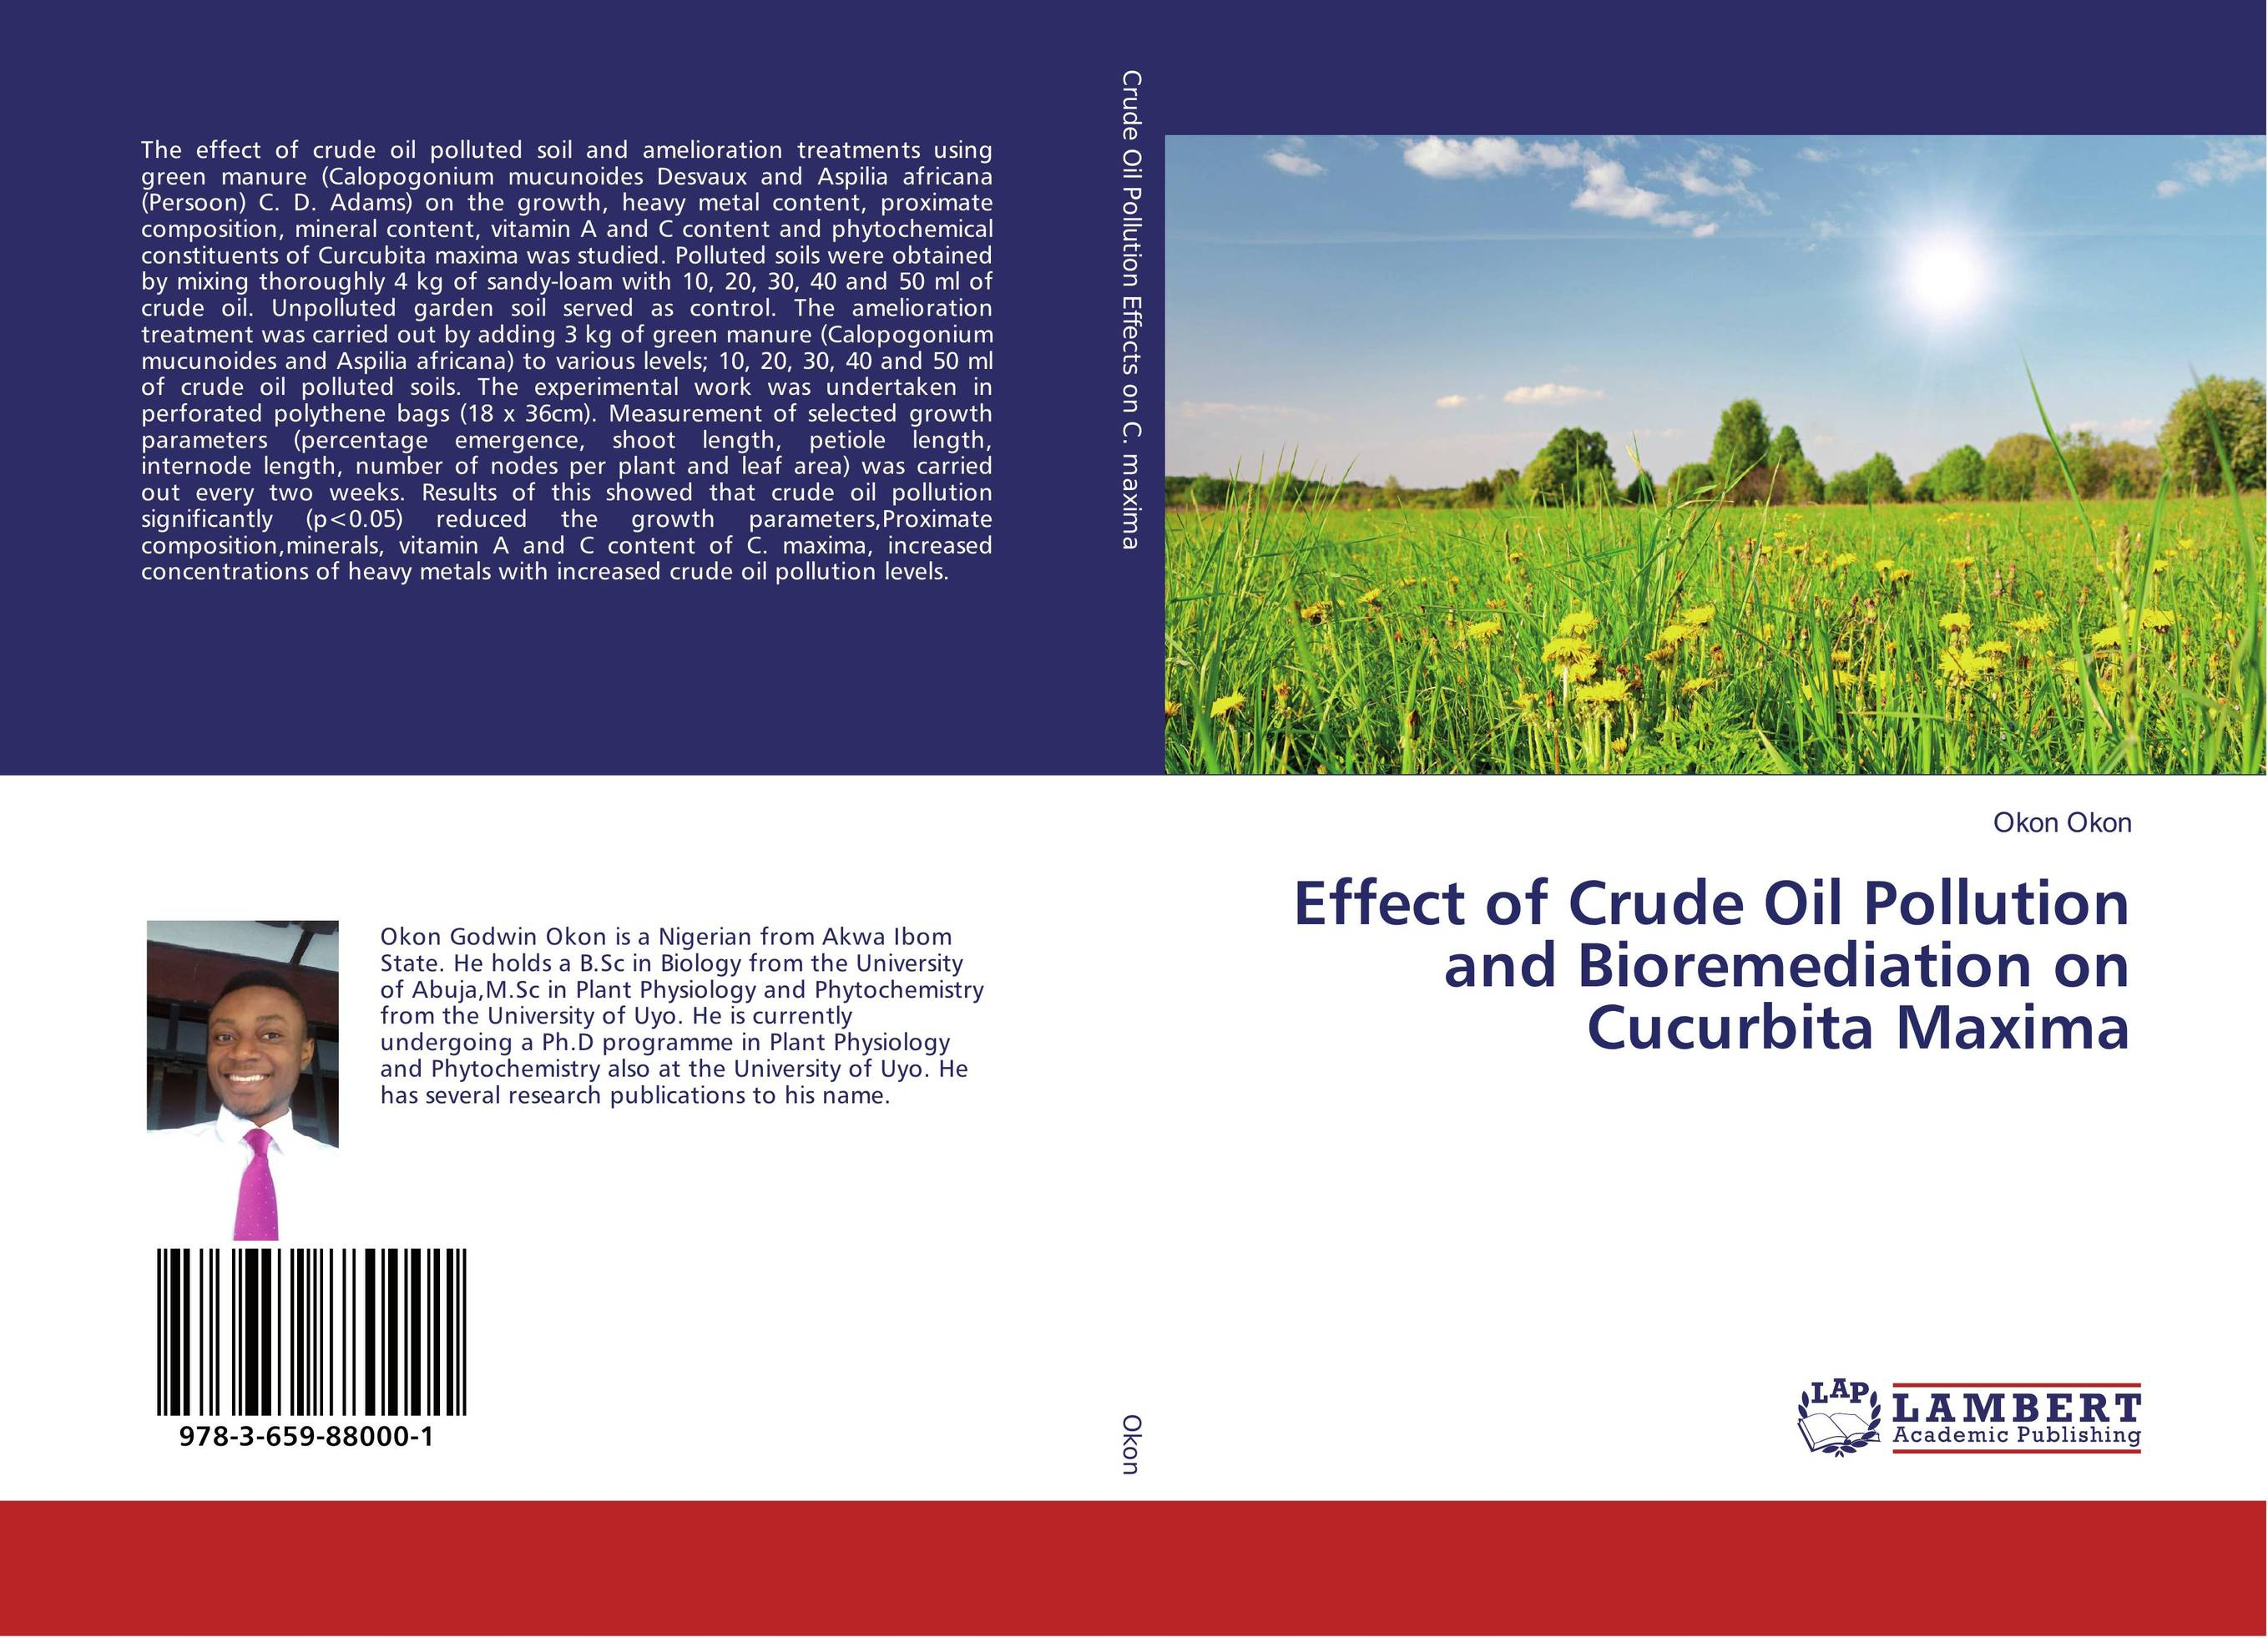 Effect of Crude Oil Pollution and Bioremediation on Cucurbita Maxima dearomatization of crude oil